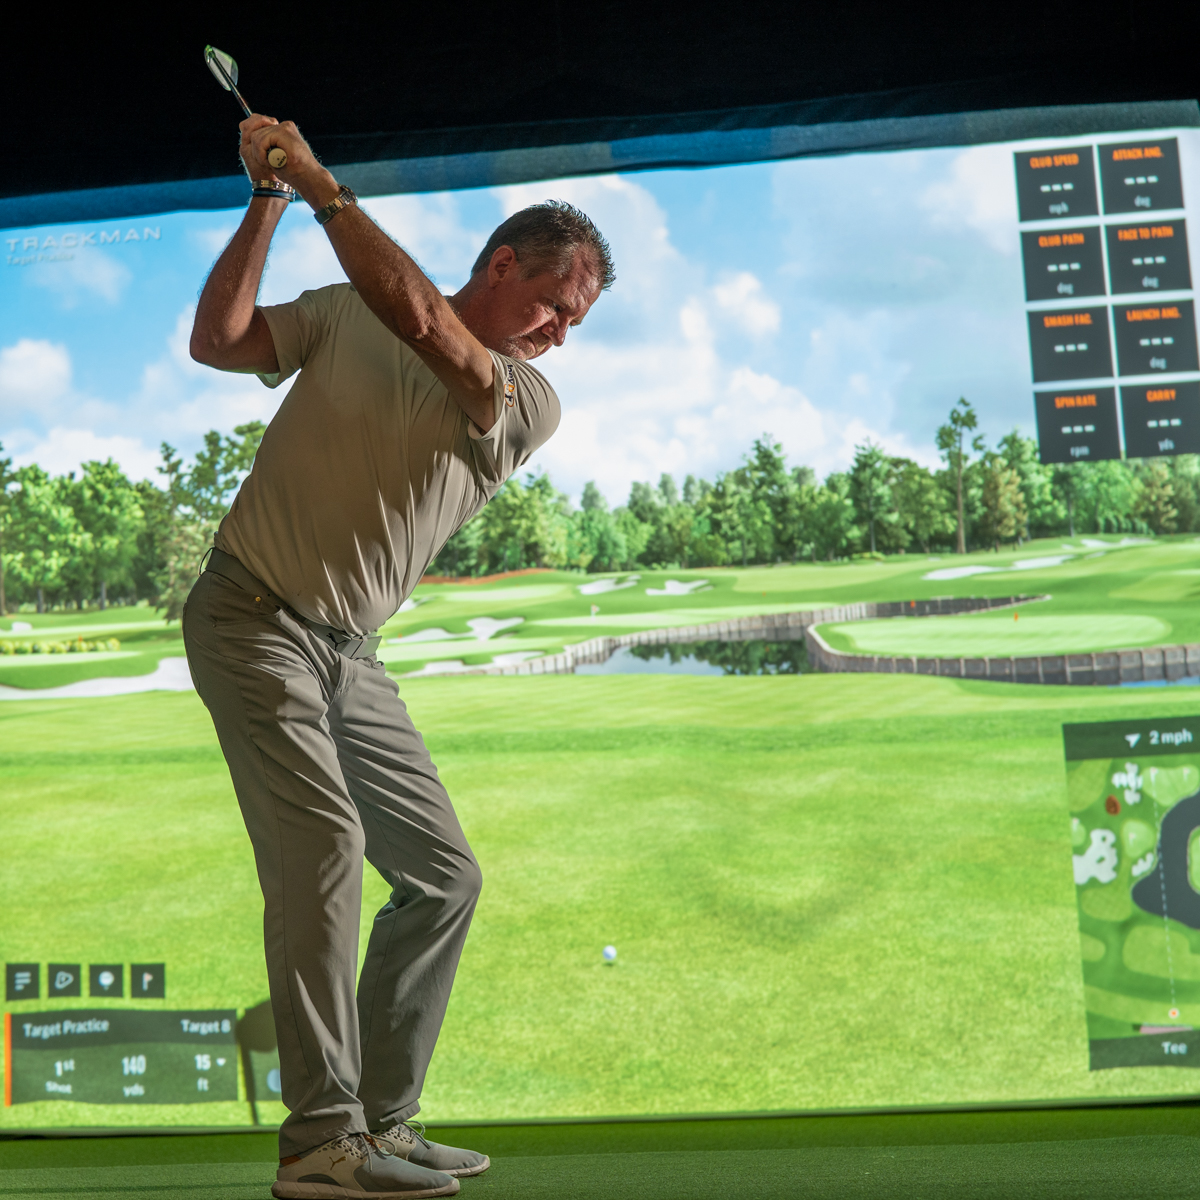 golf simulation training program